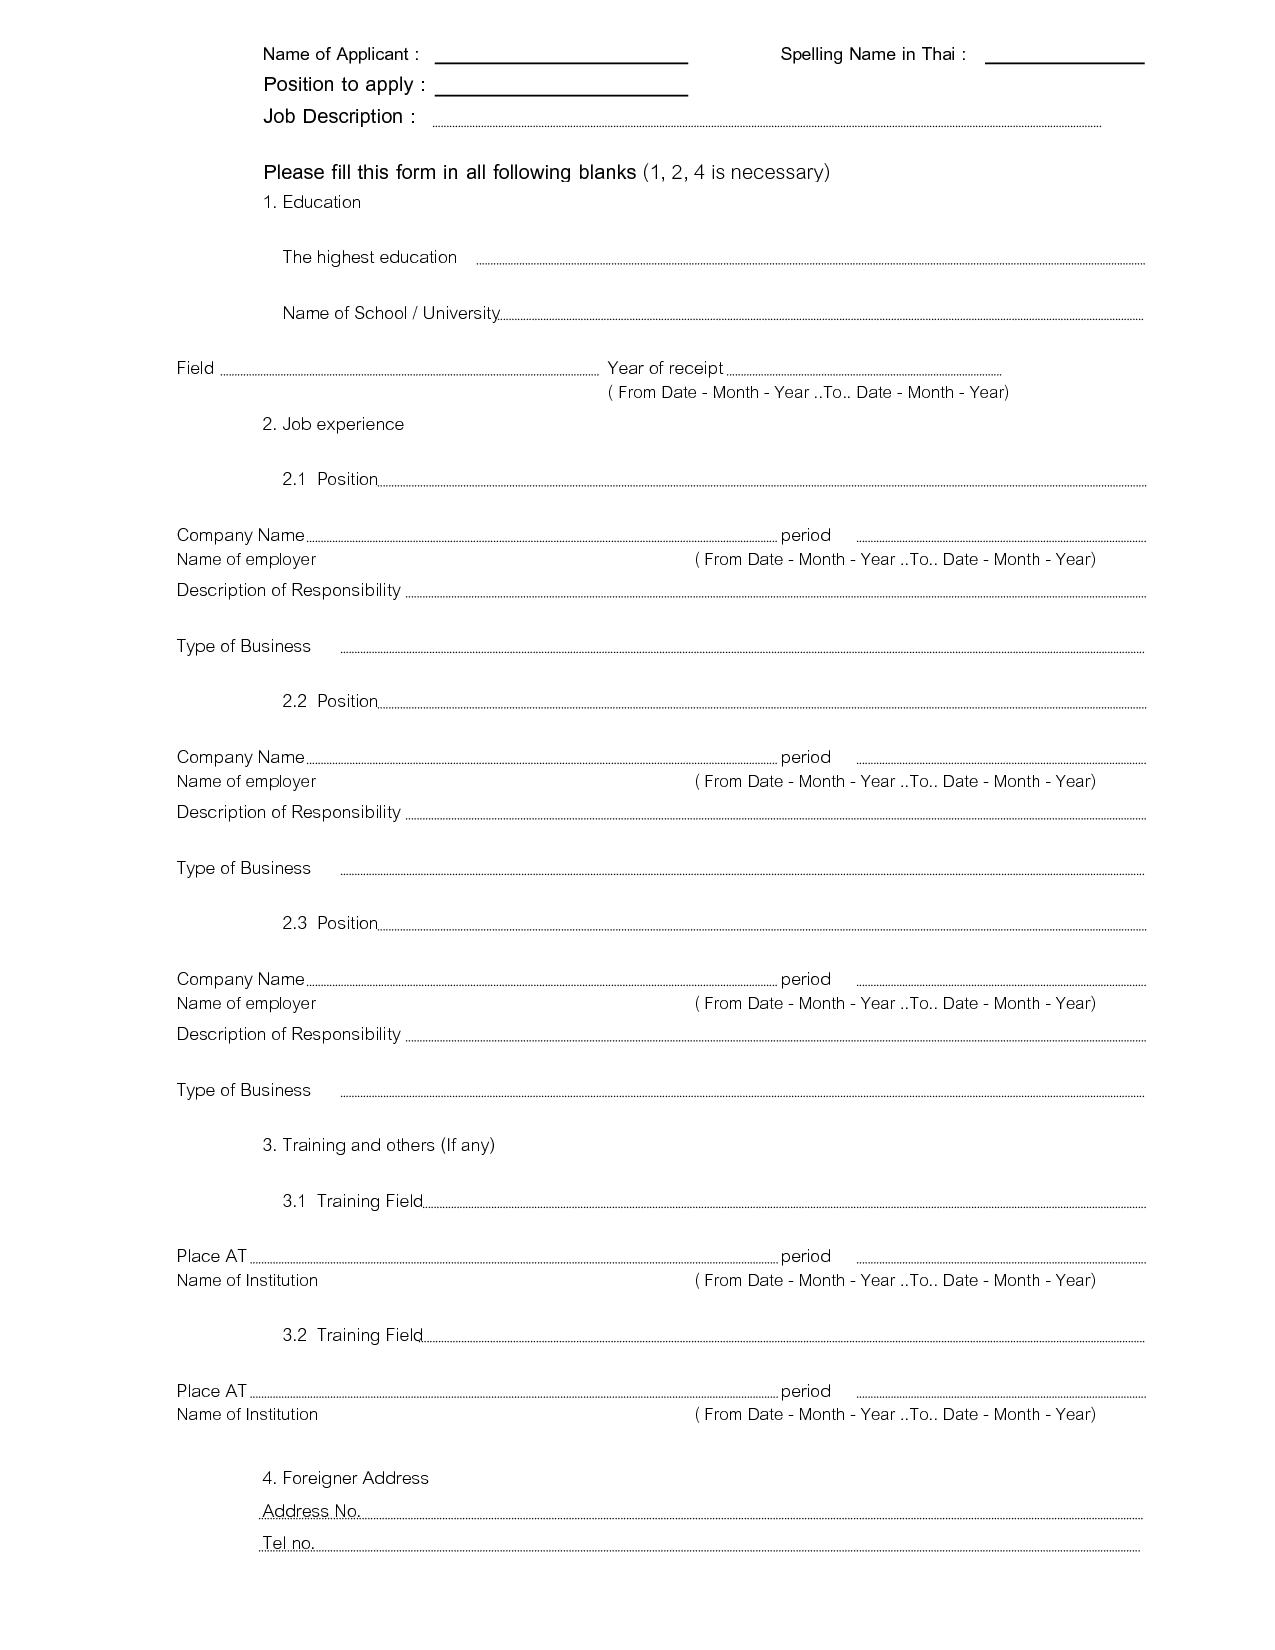 Resume Fill In The Blanks Free Template - Yeniscale.co  Fill In The Blank Template